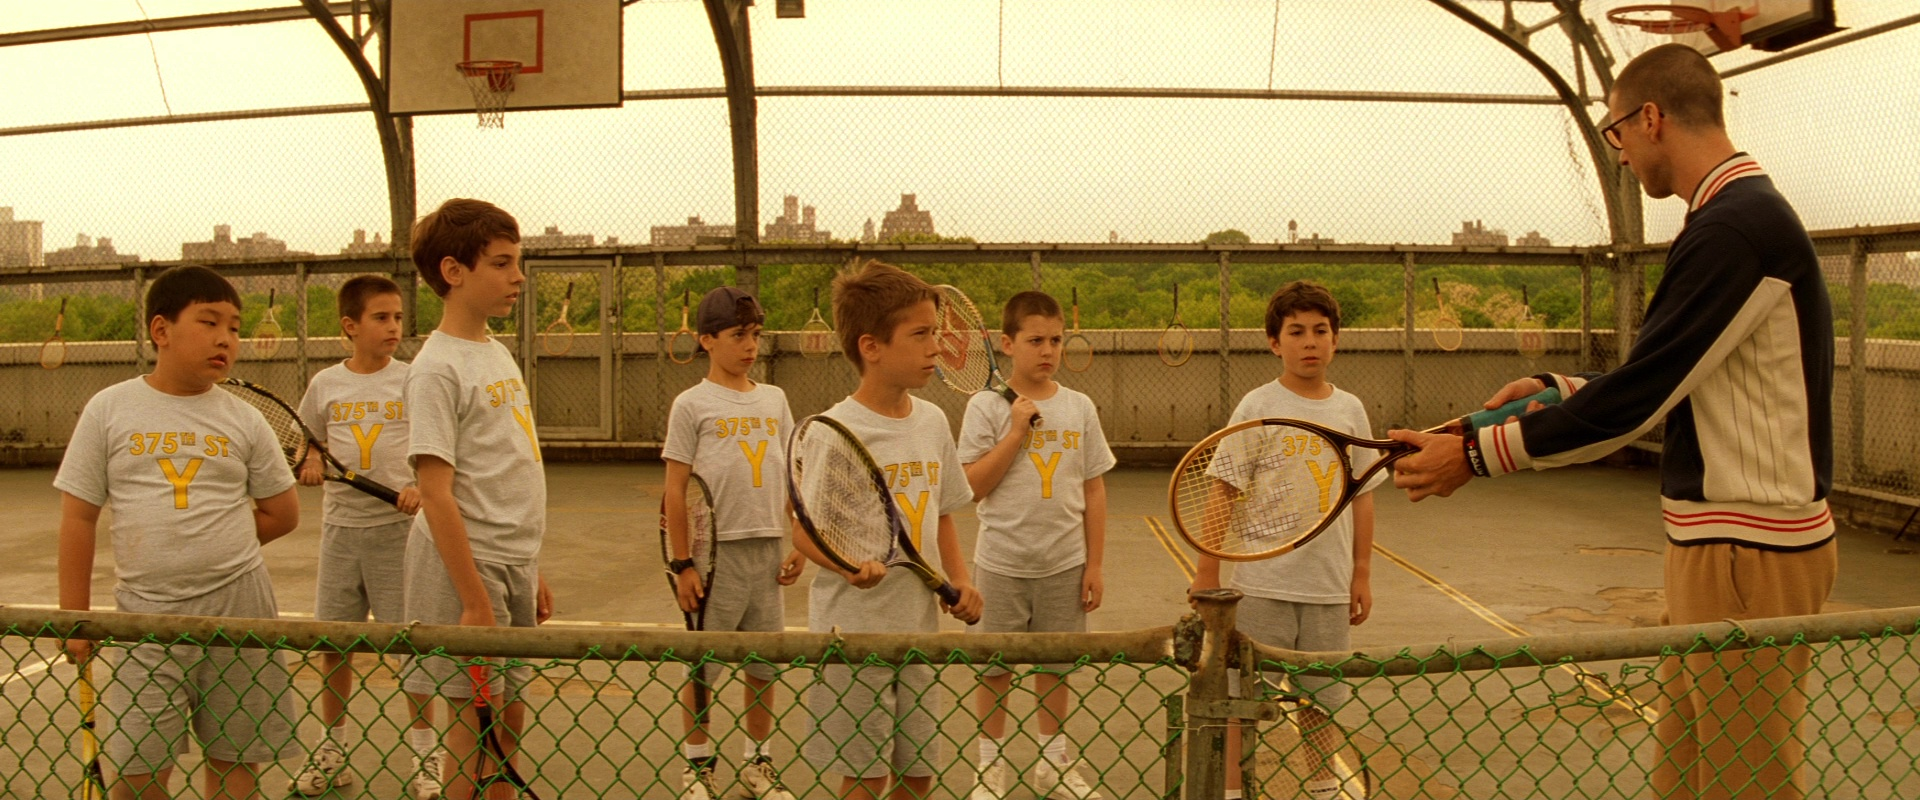 Movie Quote of the Day – The Royal Tenenbaums, 2001 (dir ... |Royal Tenenbaums Tennis Scene